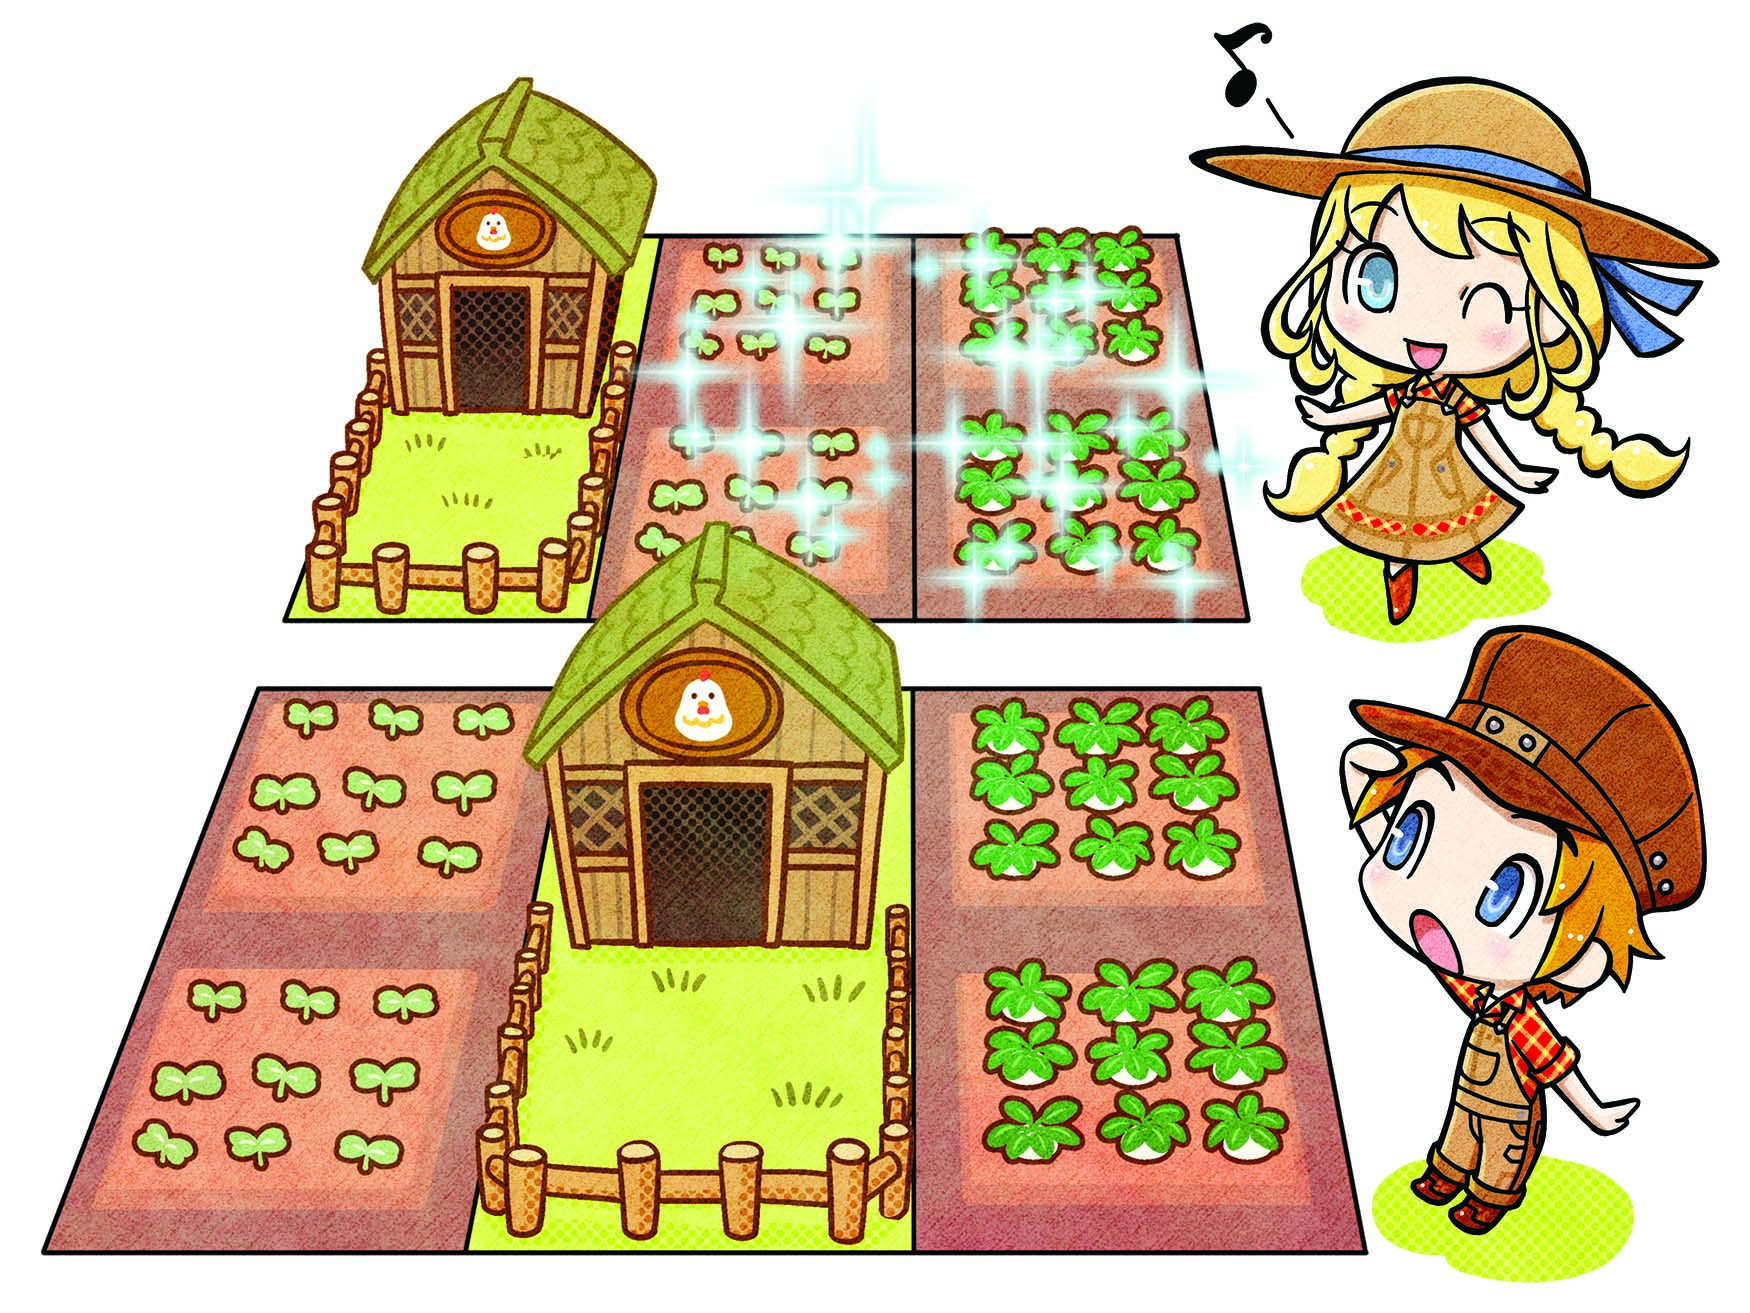 CI_3DS_StoryofSeasonsTriofTowns_GrowingCrops.jpg